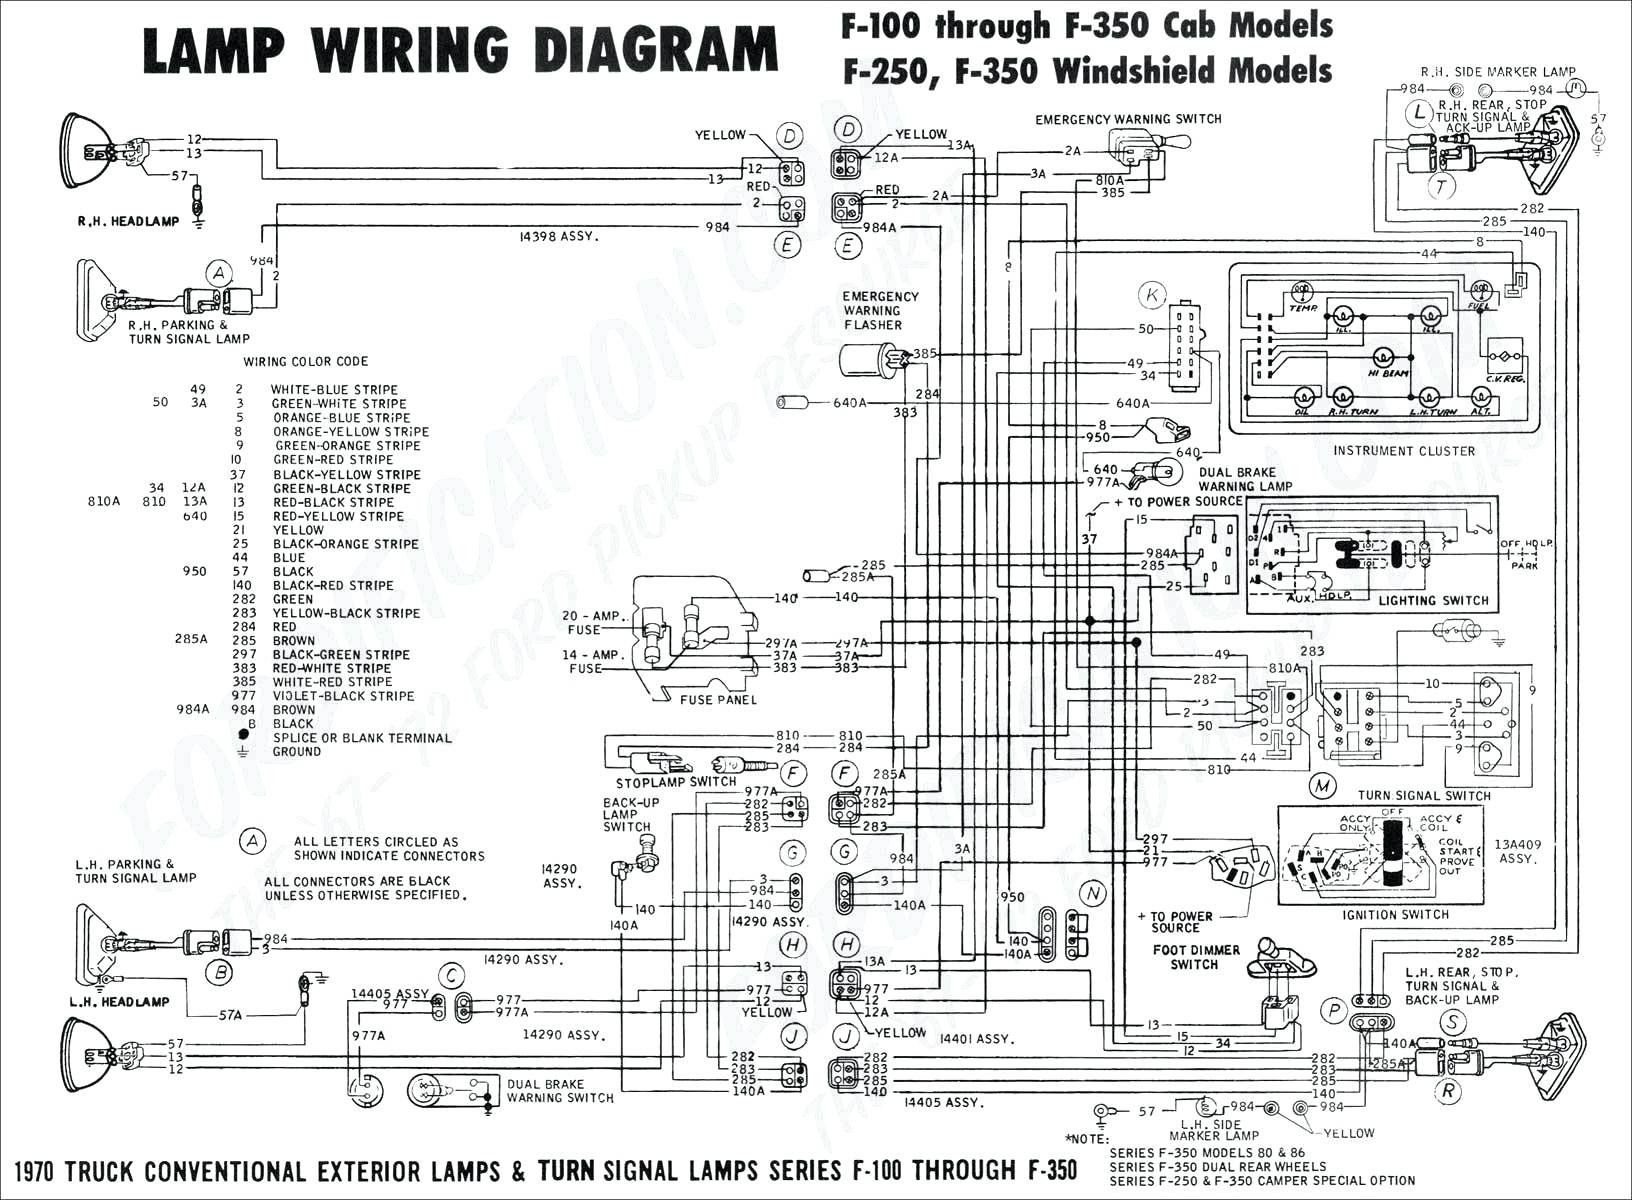 06 F650 Wiring Diagram - Fusebox and Wiring Diagram device-bacon -  device-bacon.parliamoneassieme.it | Ford F650 Wire Diagram |  | diagram database